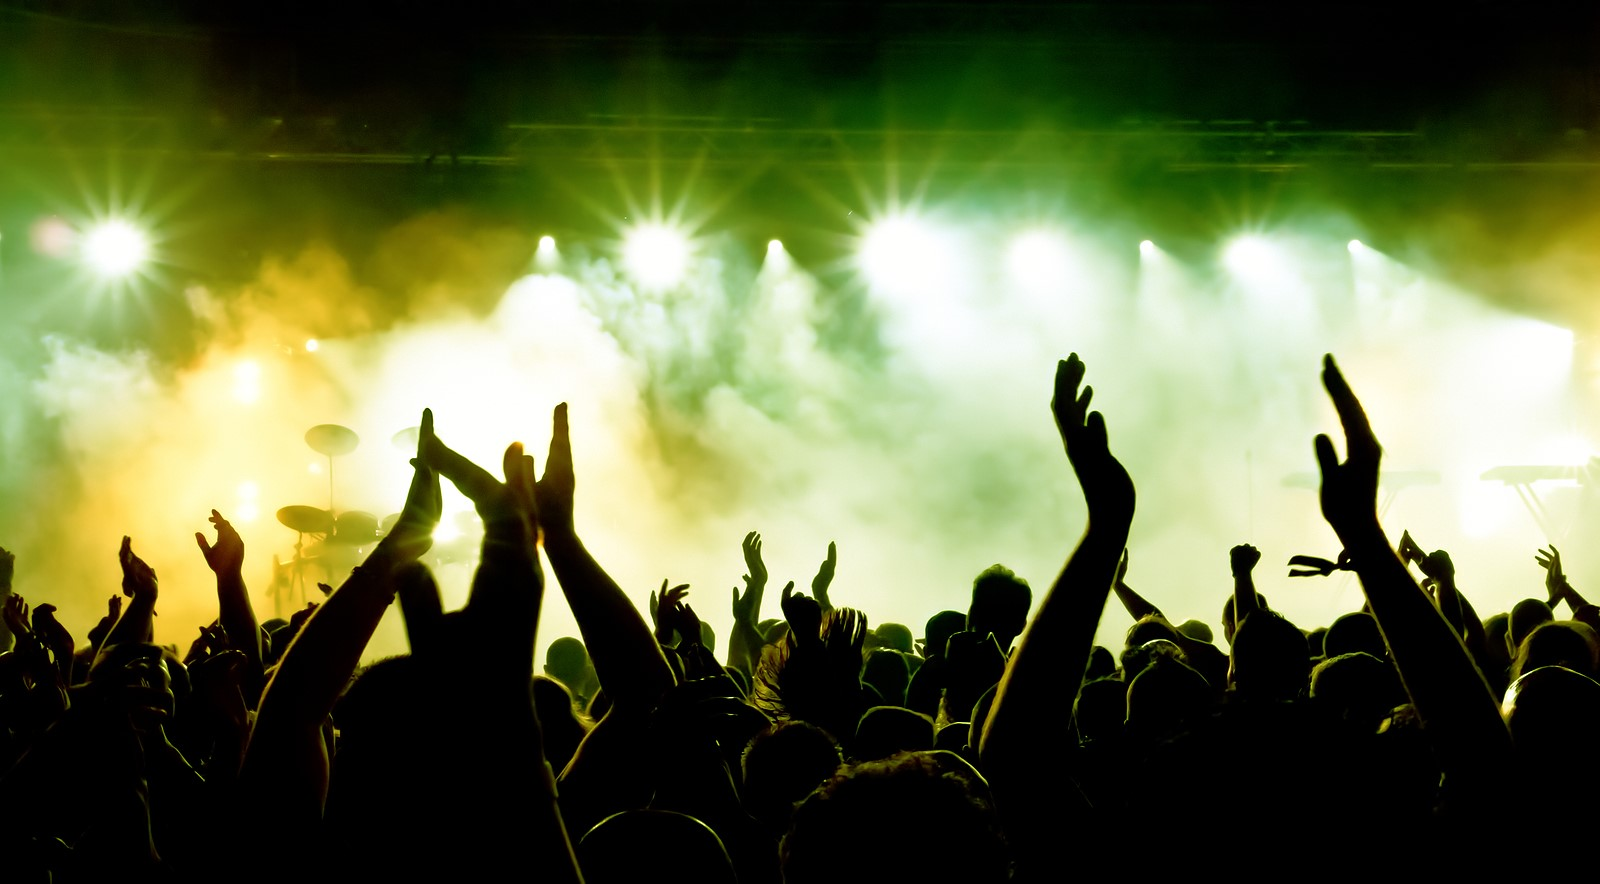 http://www.backstagetales.com/wp-content/uploads/2016/09/bigstock_silhouettes_of_concert_crowd_i_1565261621.jpg